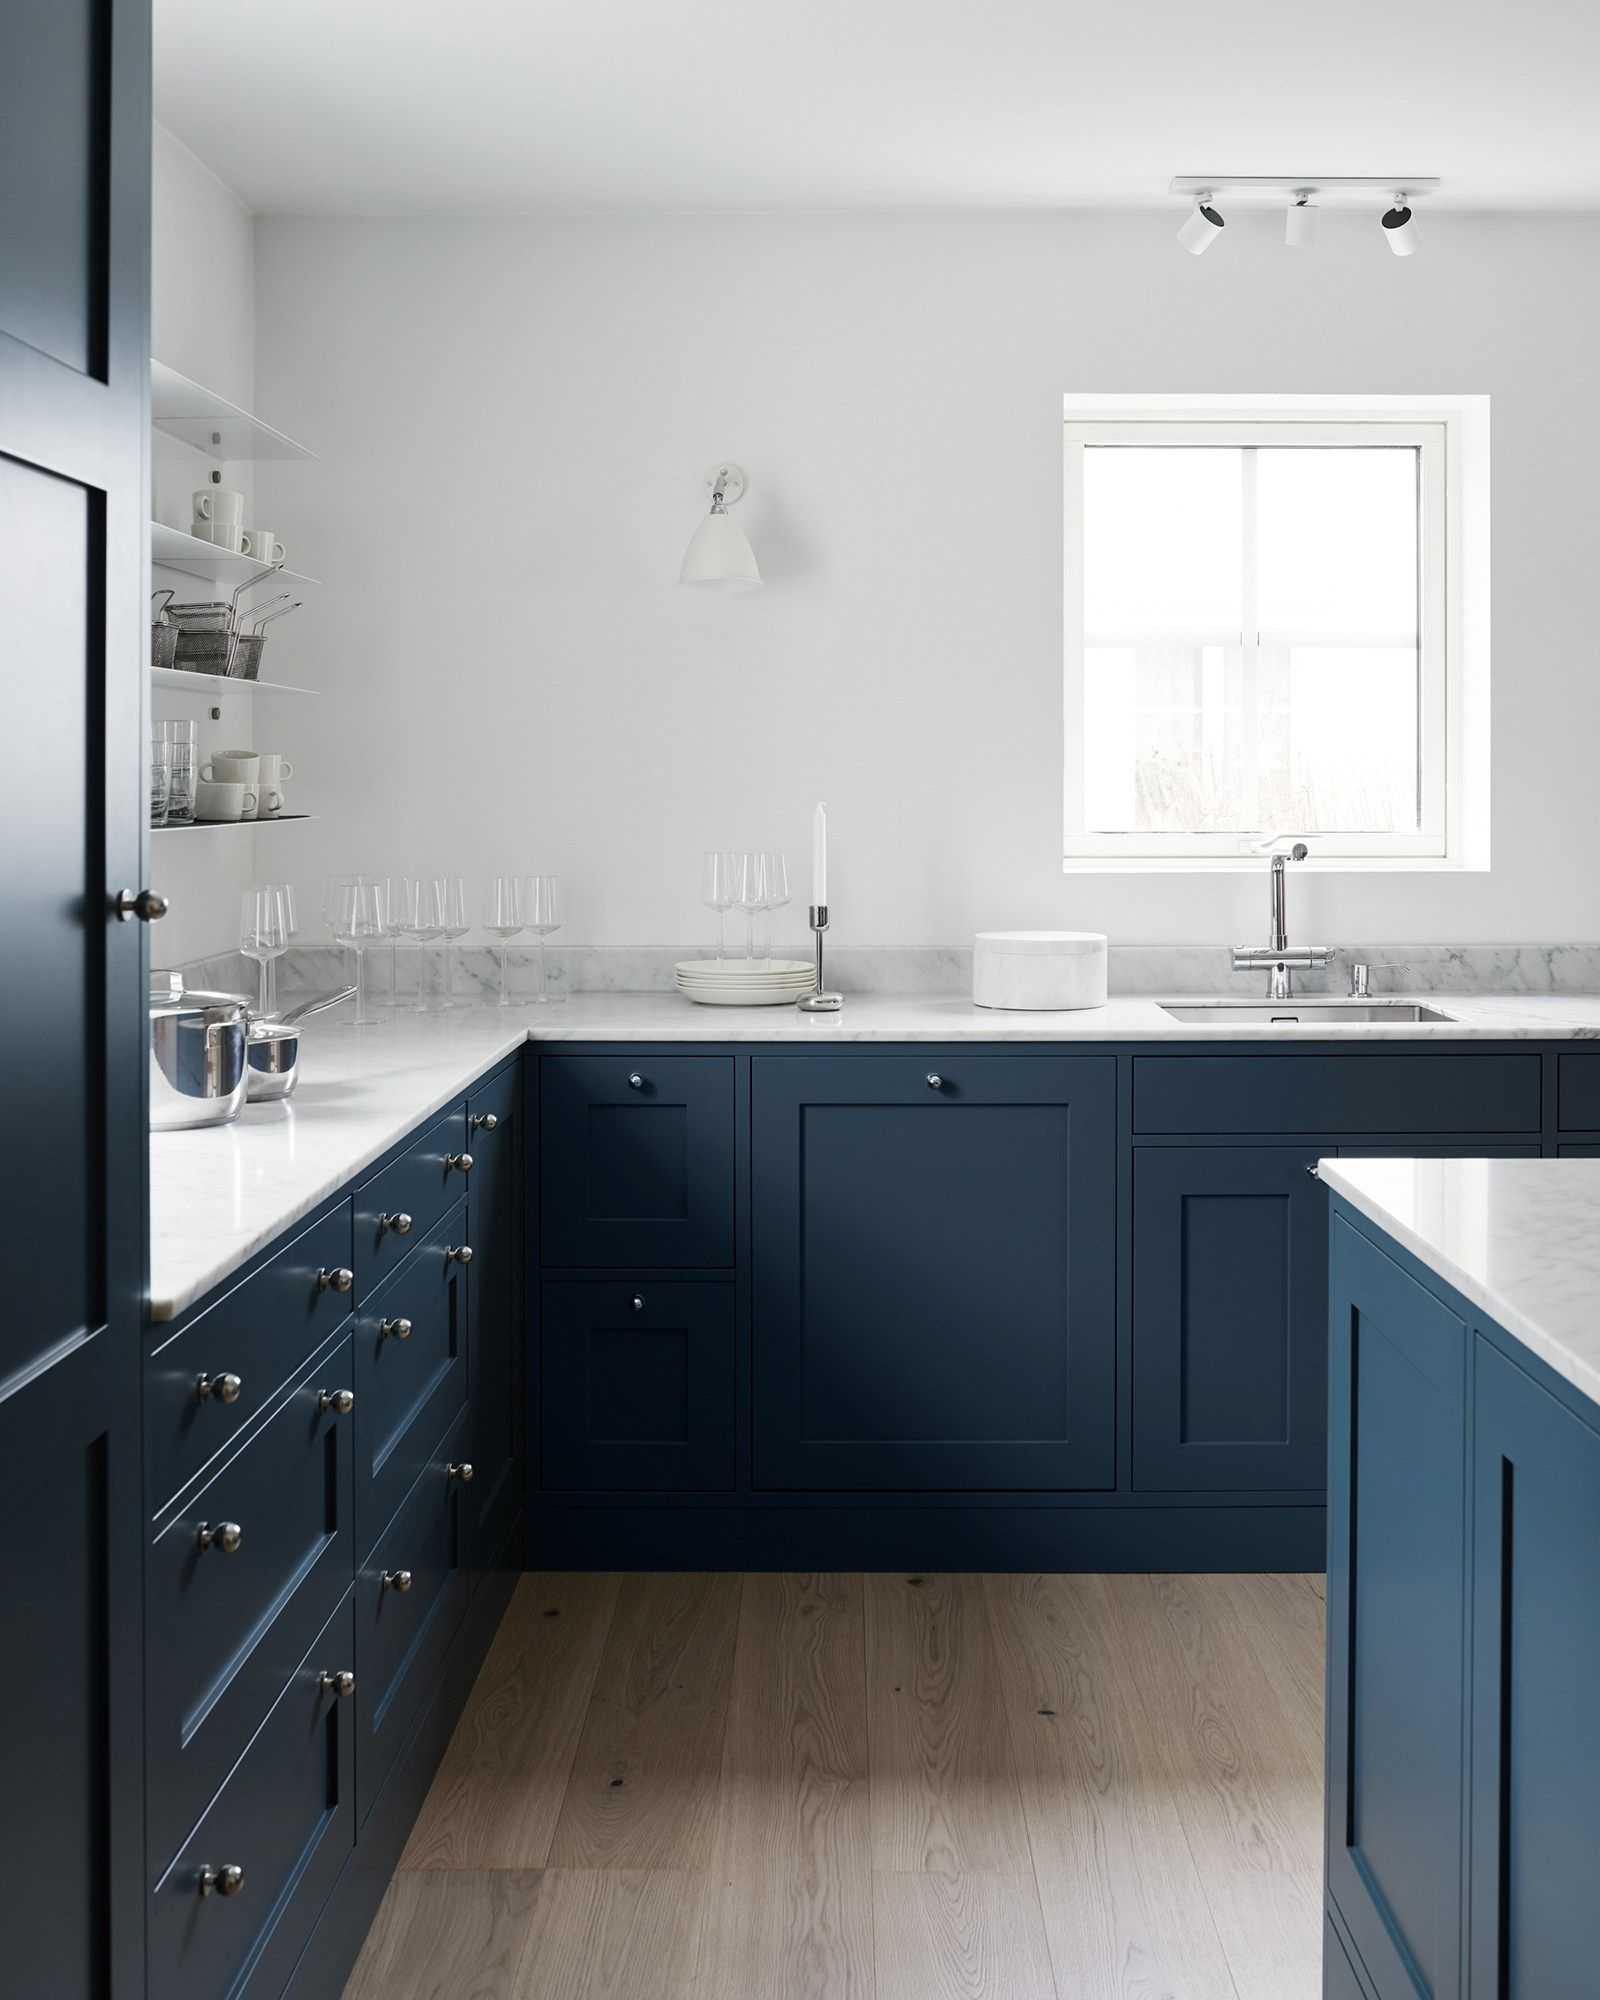 A kitchen in blue and white marble | minimalist kitchens | Pinterest ...